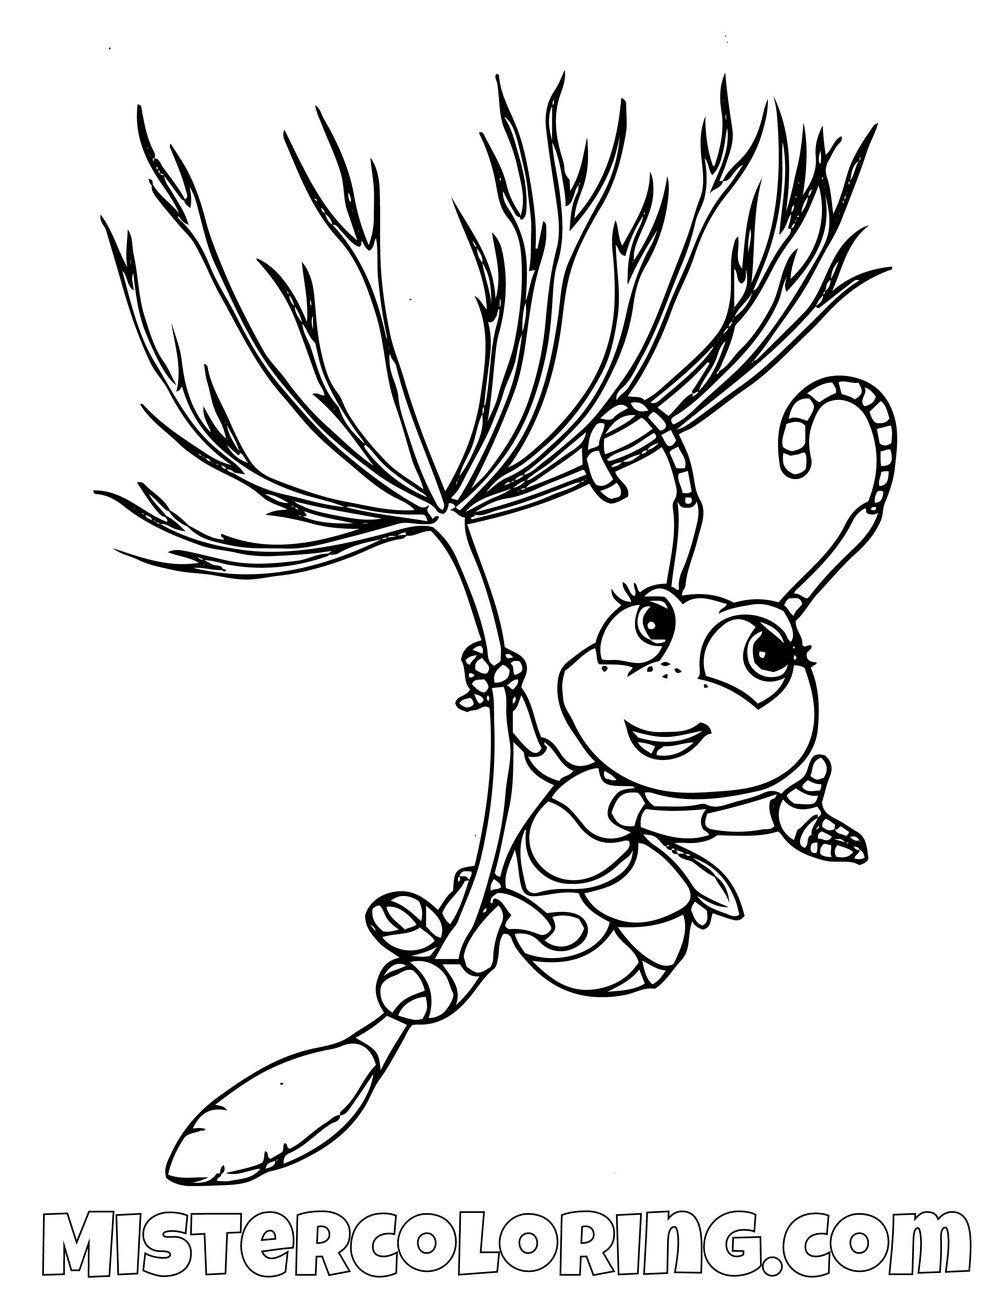 Dot Flying A Bugs Life Coloring Page Unicorn Coloring Pages Coloring Pages Disney Coloring Pages Printables